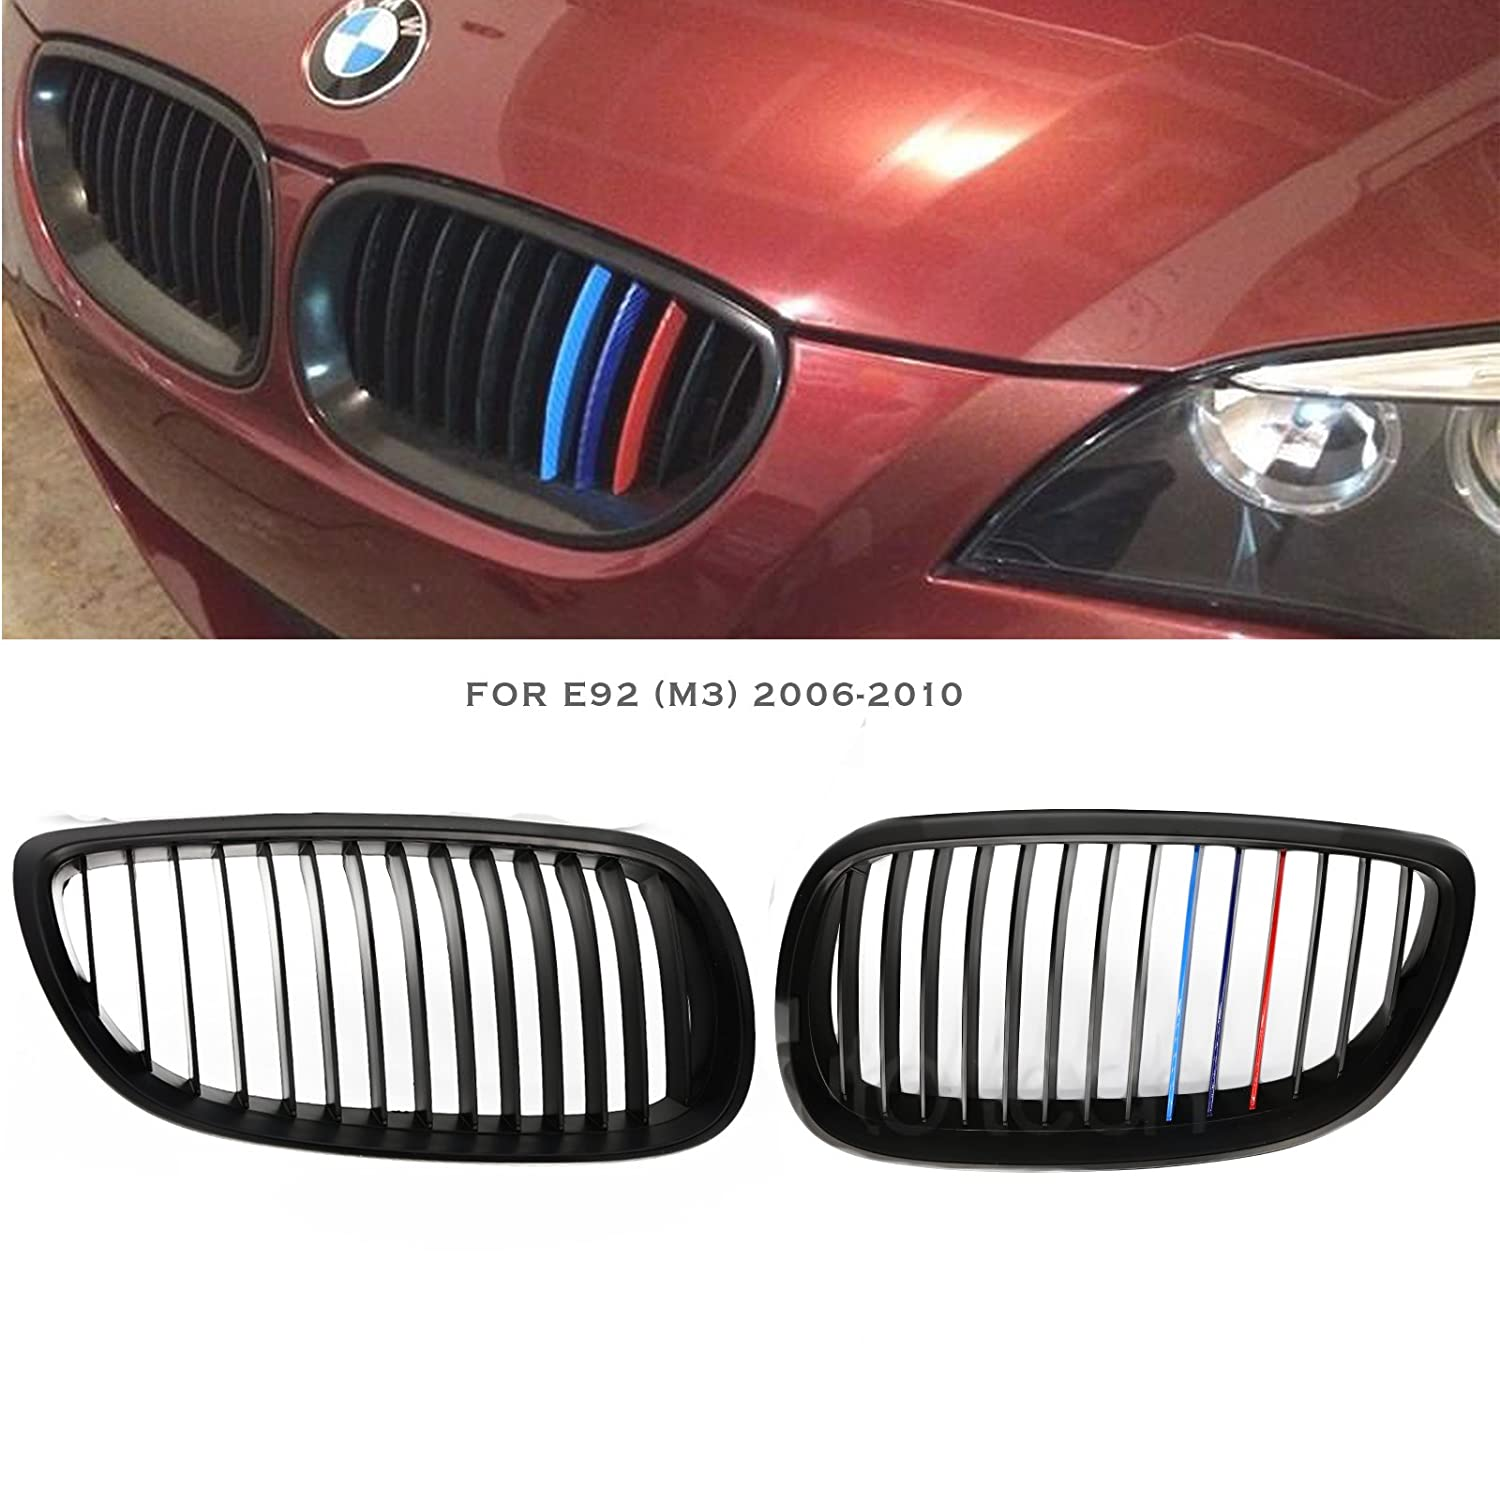 Syneticusa Matte Black Front Kidney Grille Grill 2pcs ///M for BMW 2006-2010 E92 3-Series 2 Door Coupe DT Trading